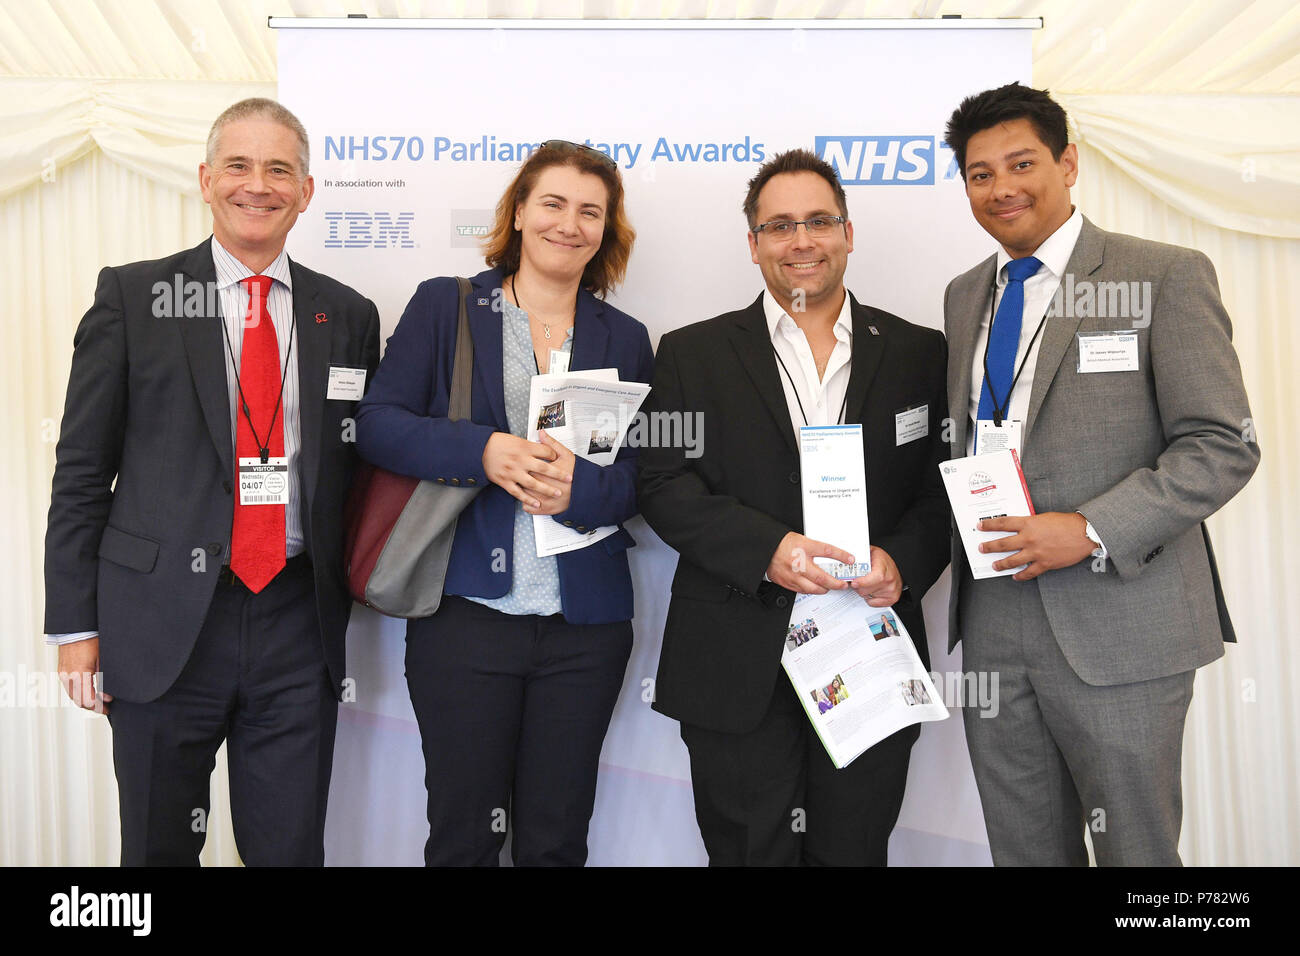 Dr David Raven (second right) receives his Excellence in Urgent and Emergency Care Award from Simon Gillespie (first left) and Drv Jeeves Wijesuriya (first right) during the NHS70 parliamentary awards for the 70th anniversary of the NHS at the House of Commons in Westminster, London. - Stock Image